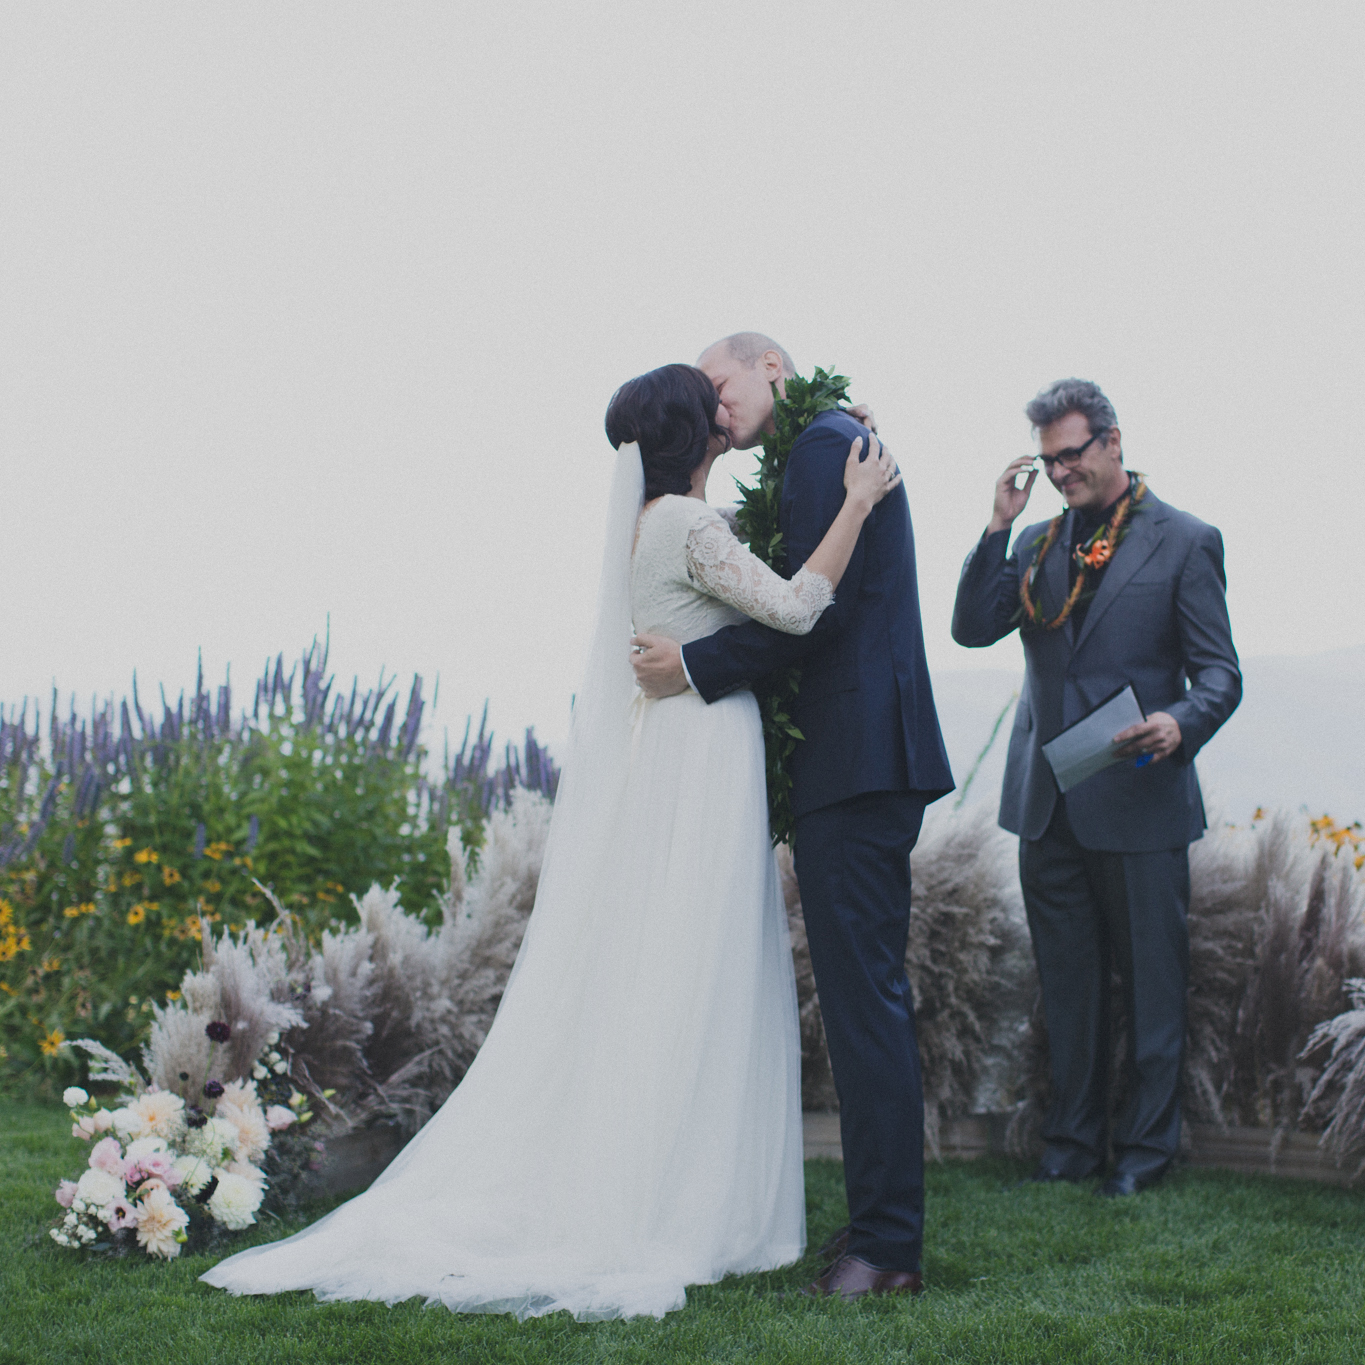 pampas_grass_ceremony_gorge_wedding_hilary_horvath_flowers.jpg